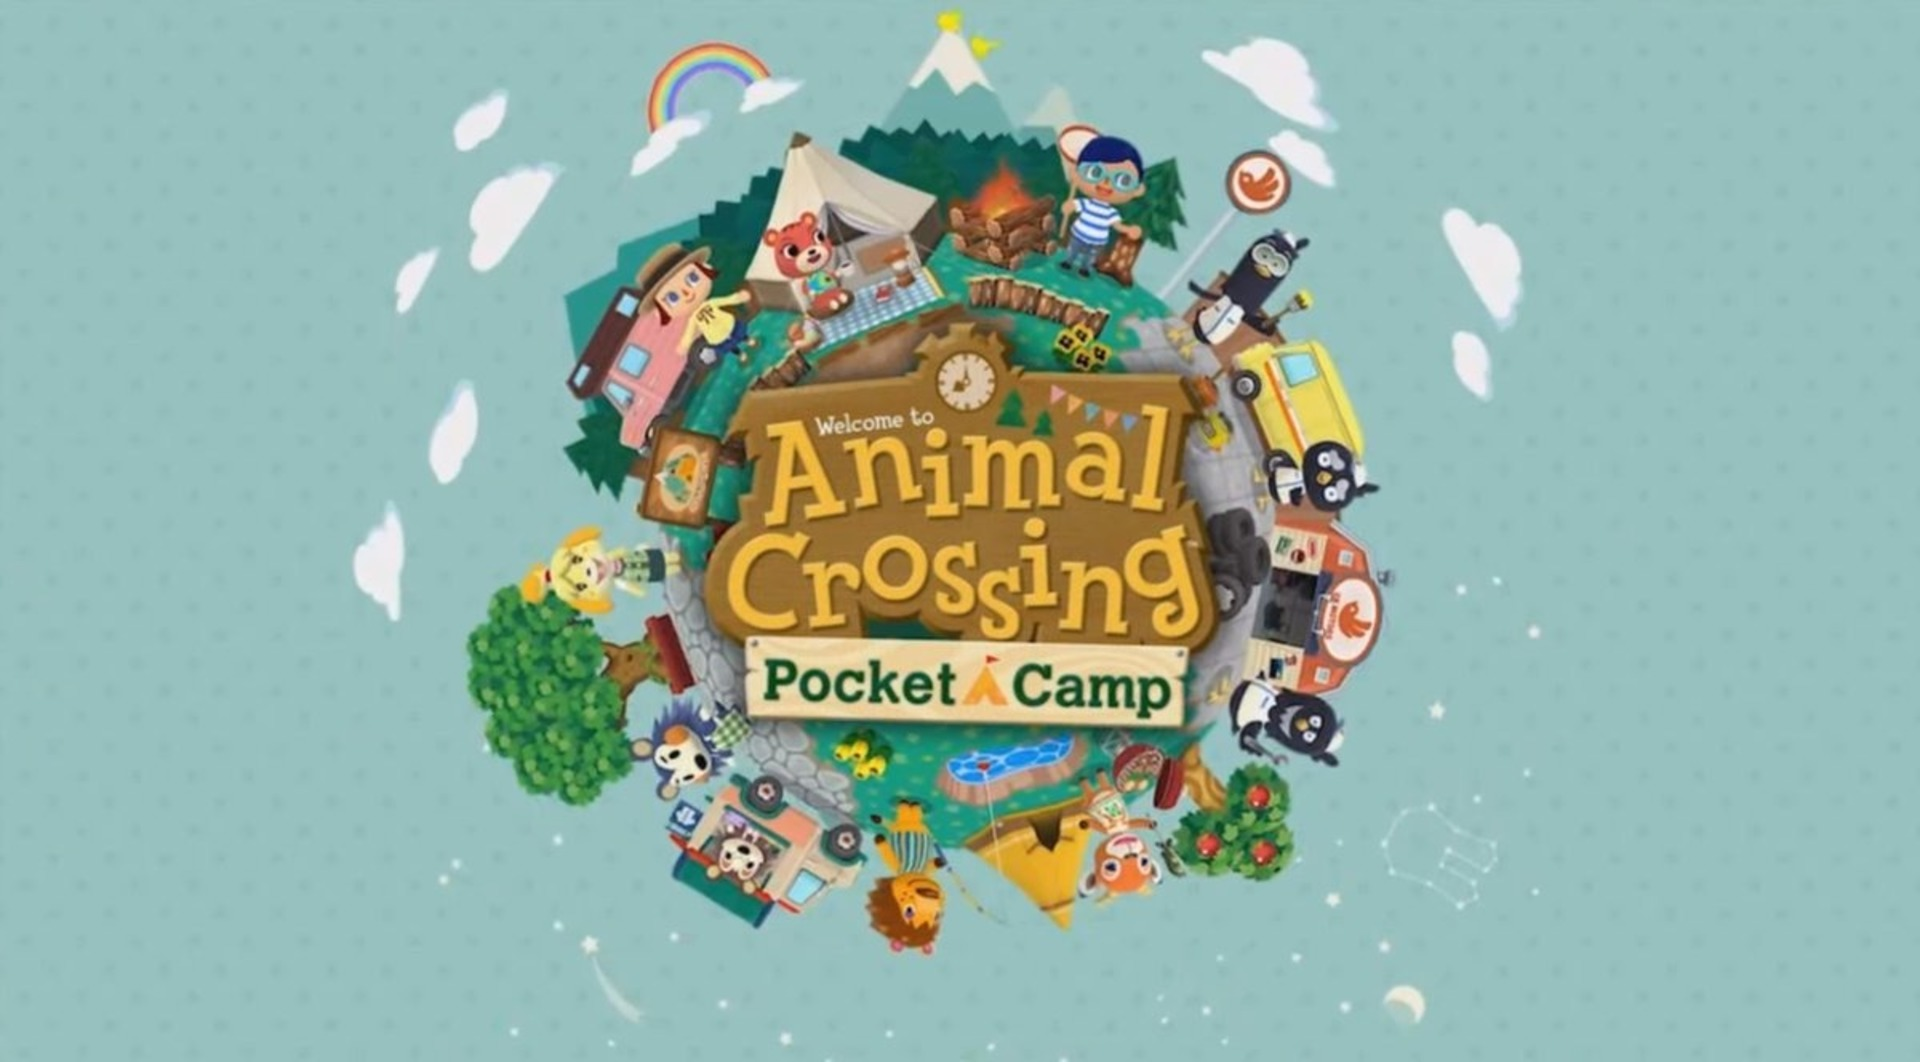 Animal Crossing: Pocket Camp game